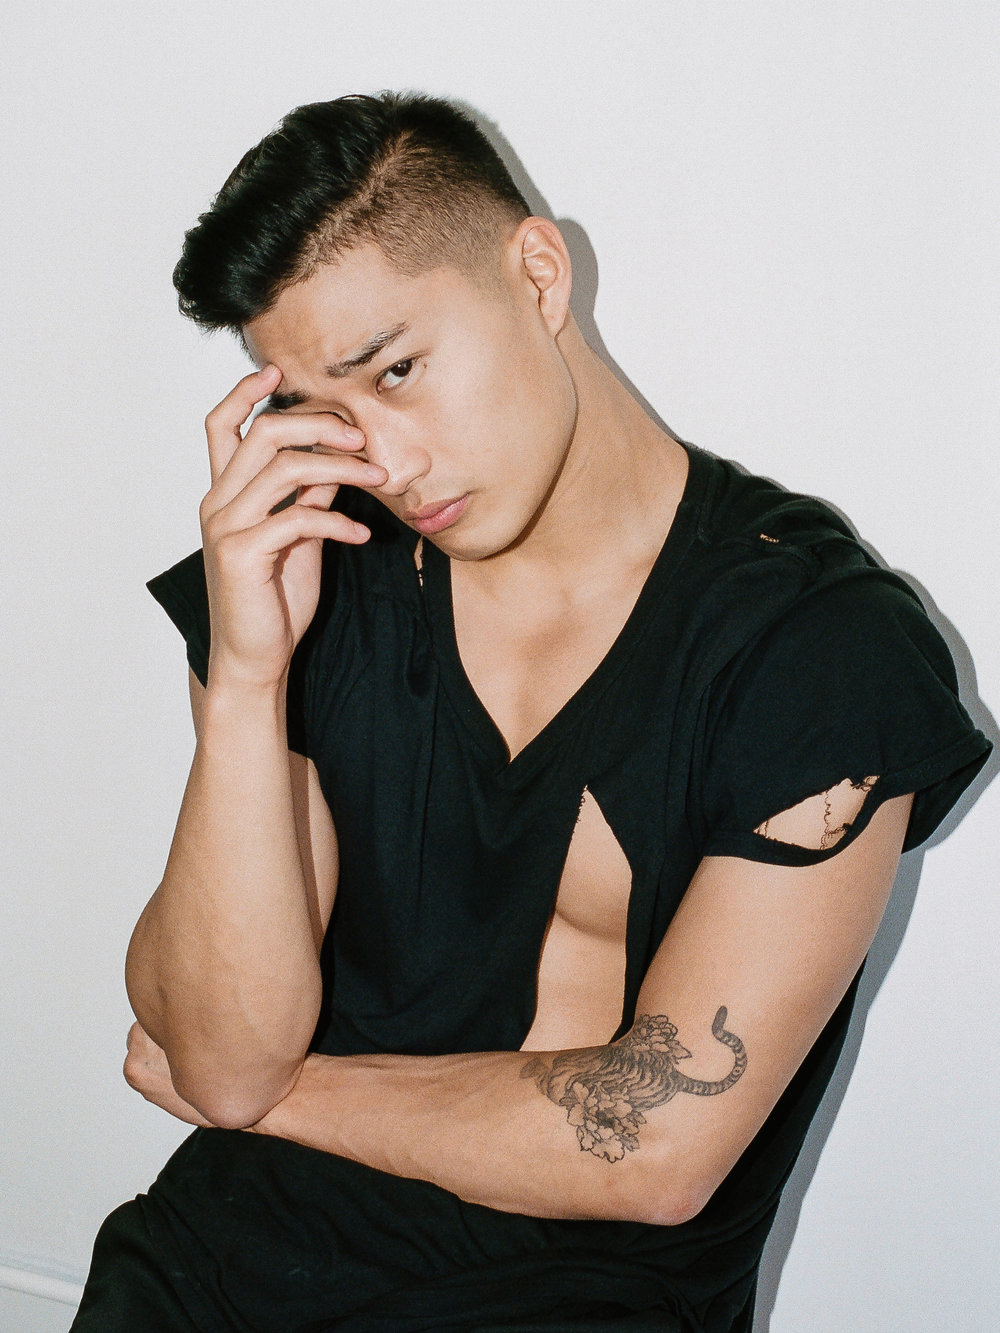 Joey Kim Red Models New York Photo by Emanuel Hahn